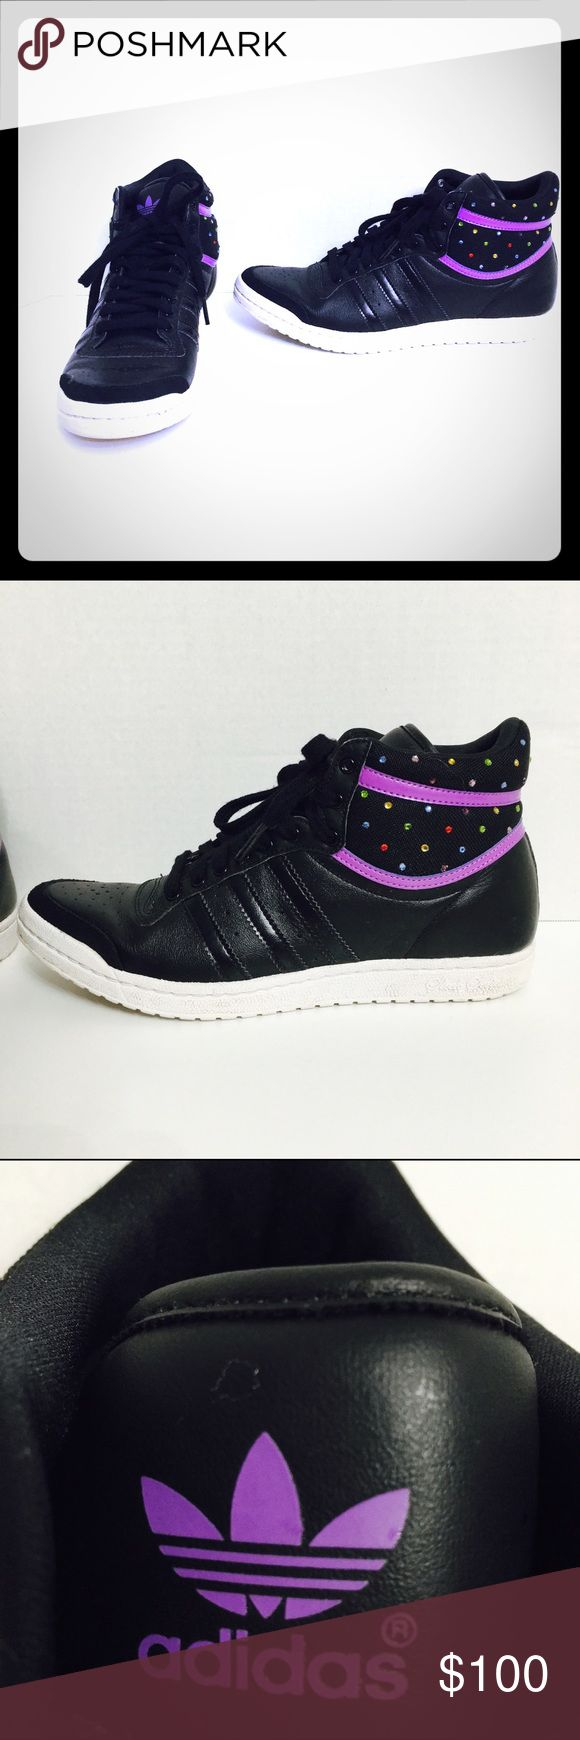 Adidas Sleek Series Black Purple Bling Hi Tops! Size7! Adidas Shoes Sneakers